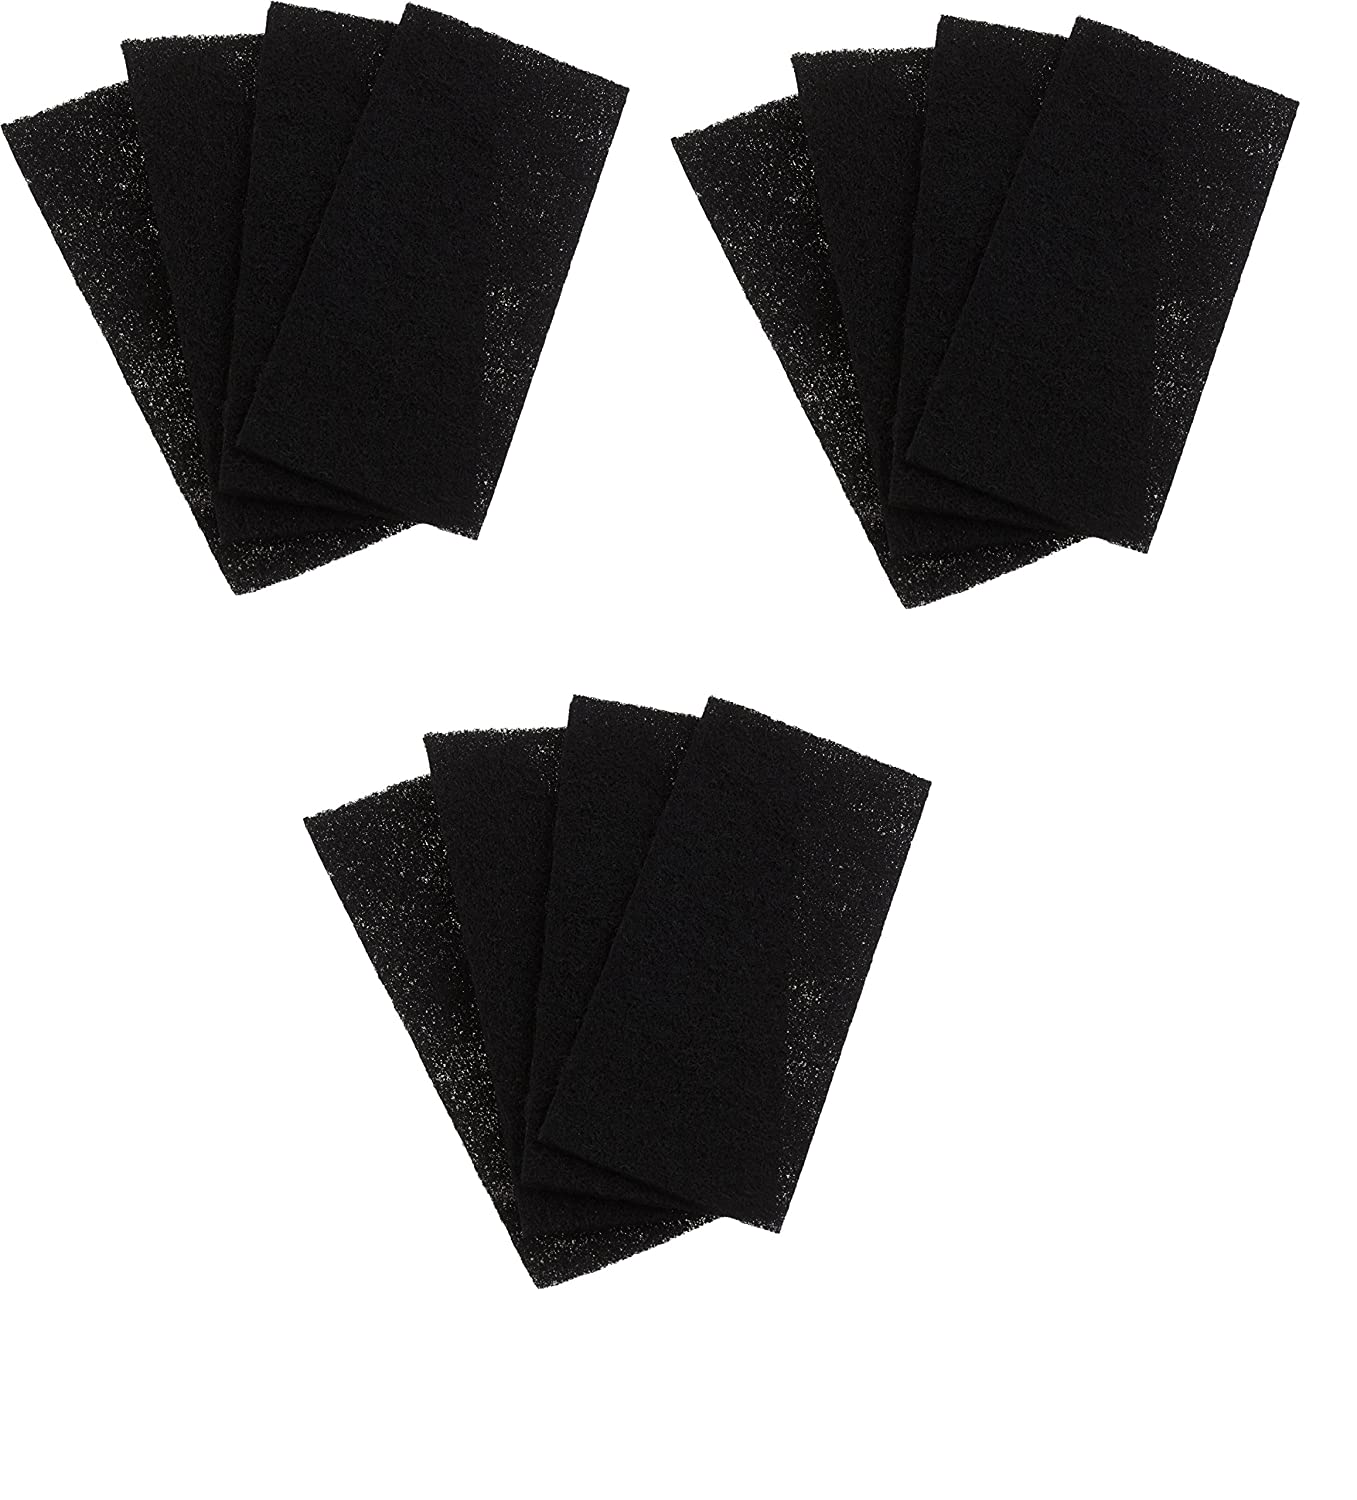 Replacement Holmes Carbon Filters HAPF60, CP-6011 Filter C, 4 Pack All-Filters Inc